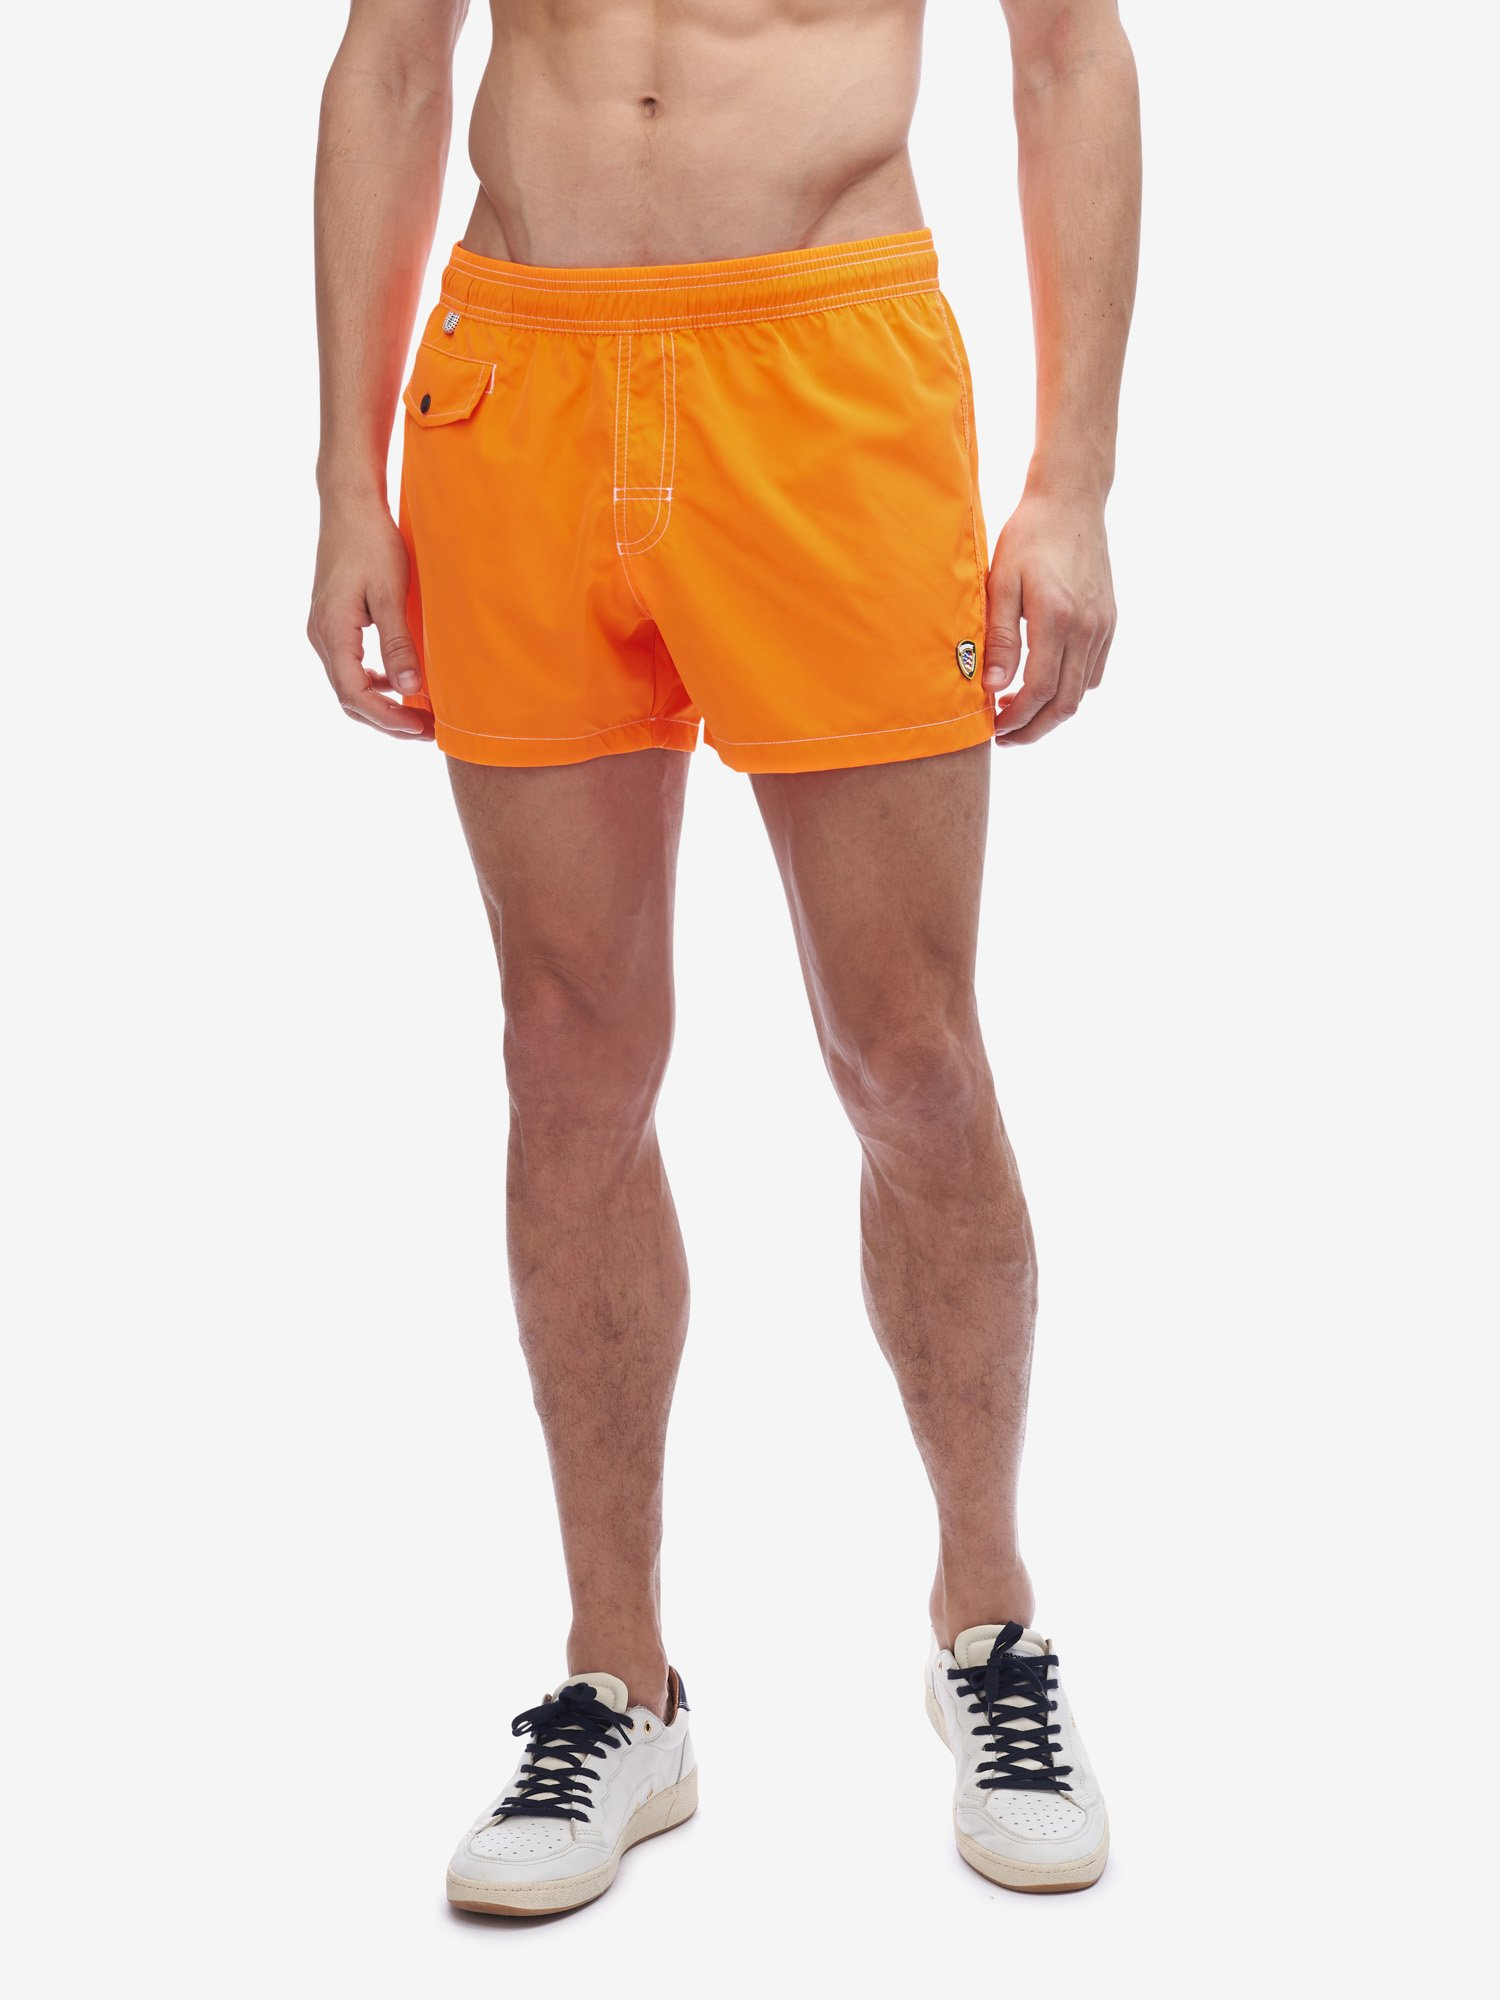 Blauer - BOXER EN NYLON - Fluo Orange - Blauer